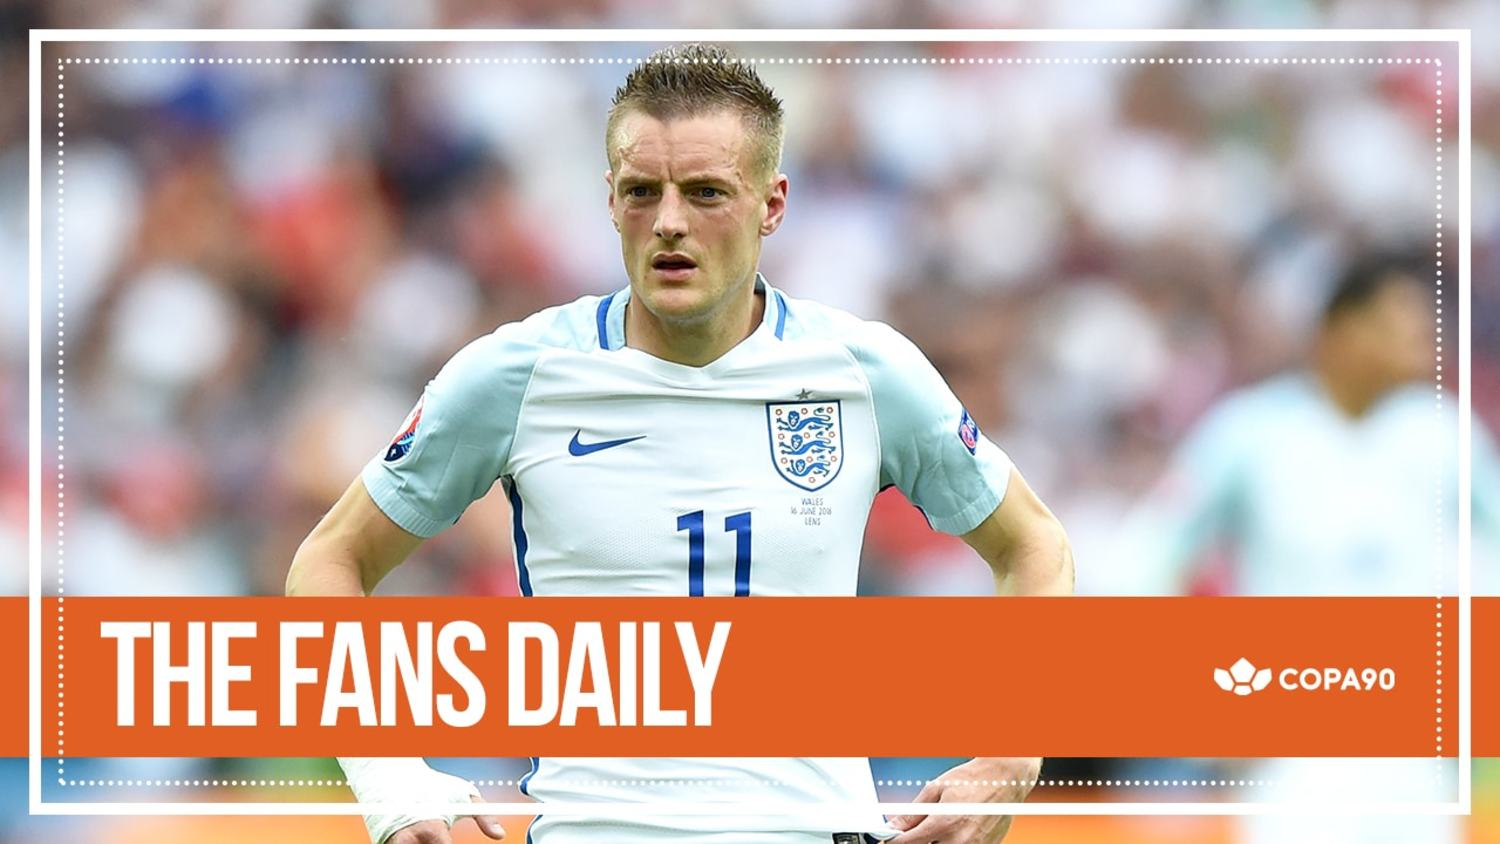 Bale Chats Sh*t, Gets Banged by Vardy | The Fans Daily